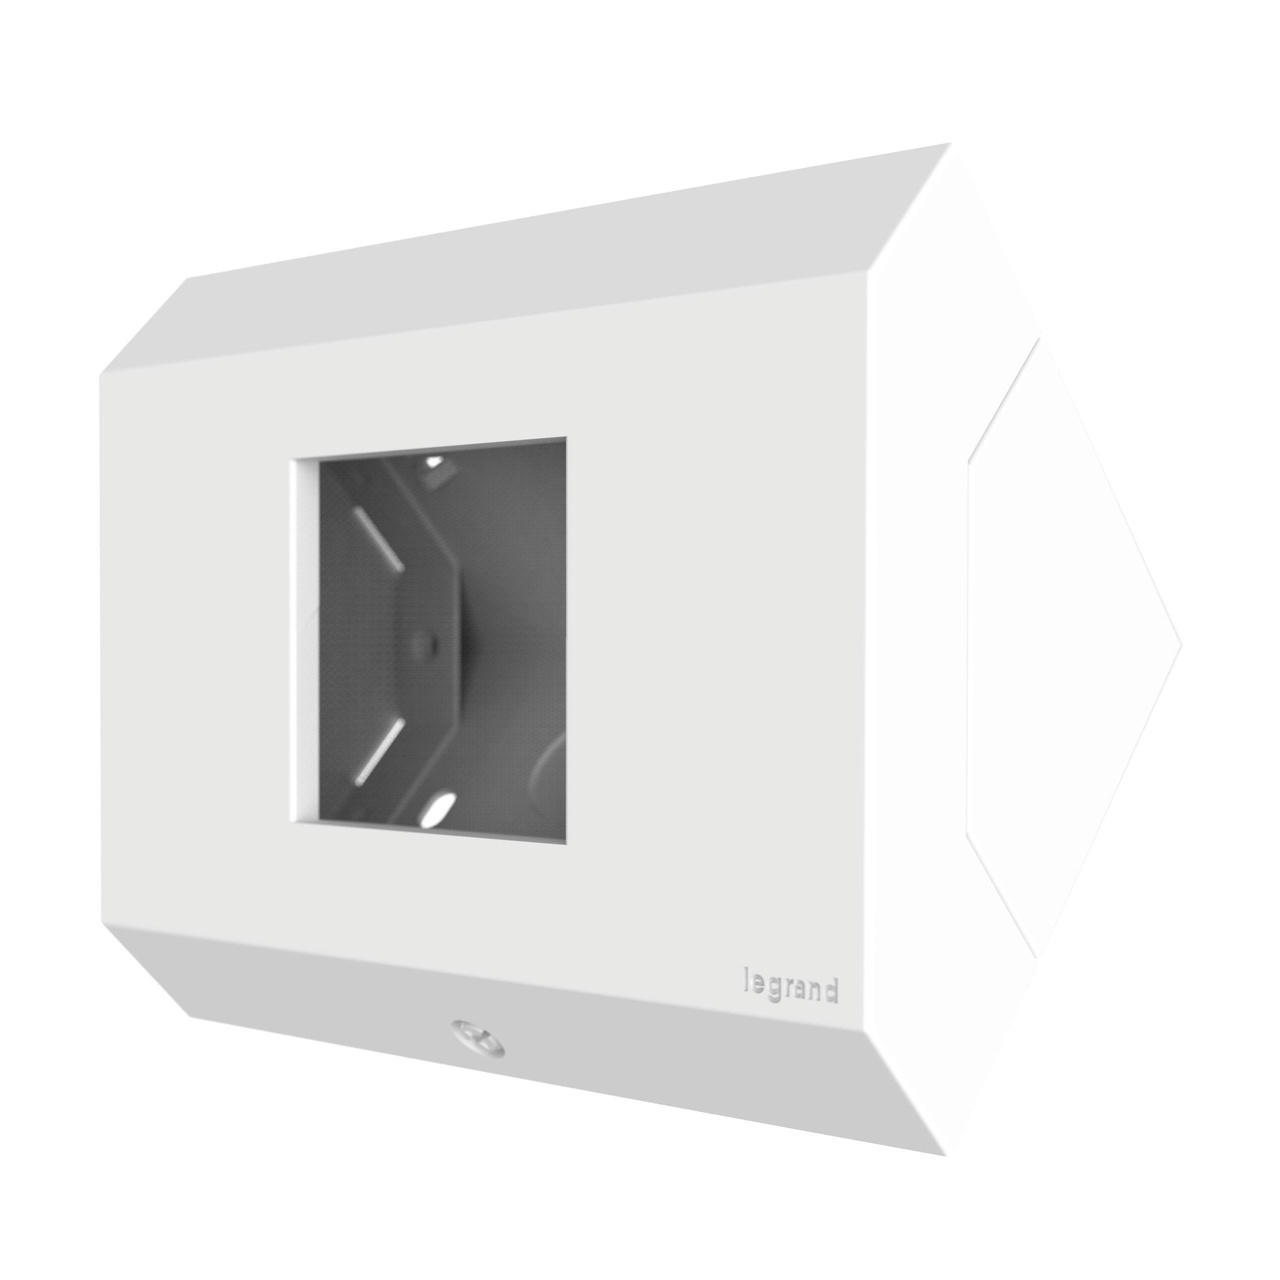 Adorne Undercabinet Control Boxadorne Control Box in White  from the adorne collection   Legrand. Adorne Lighting Control. Home Design Ideas